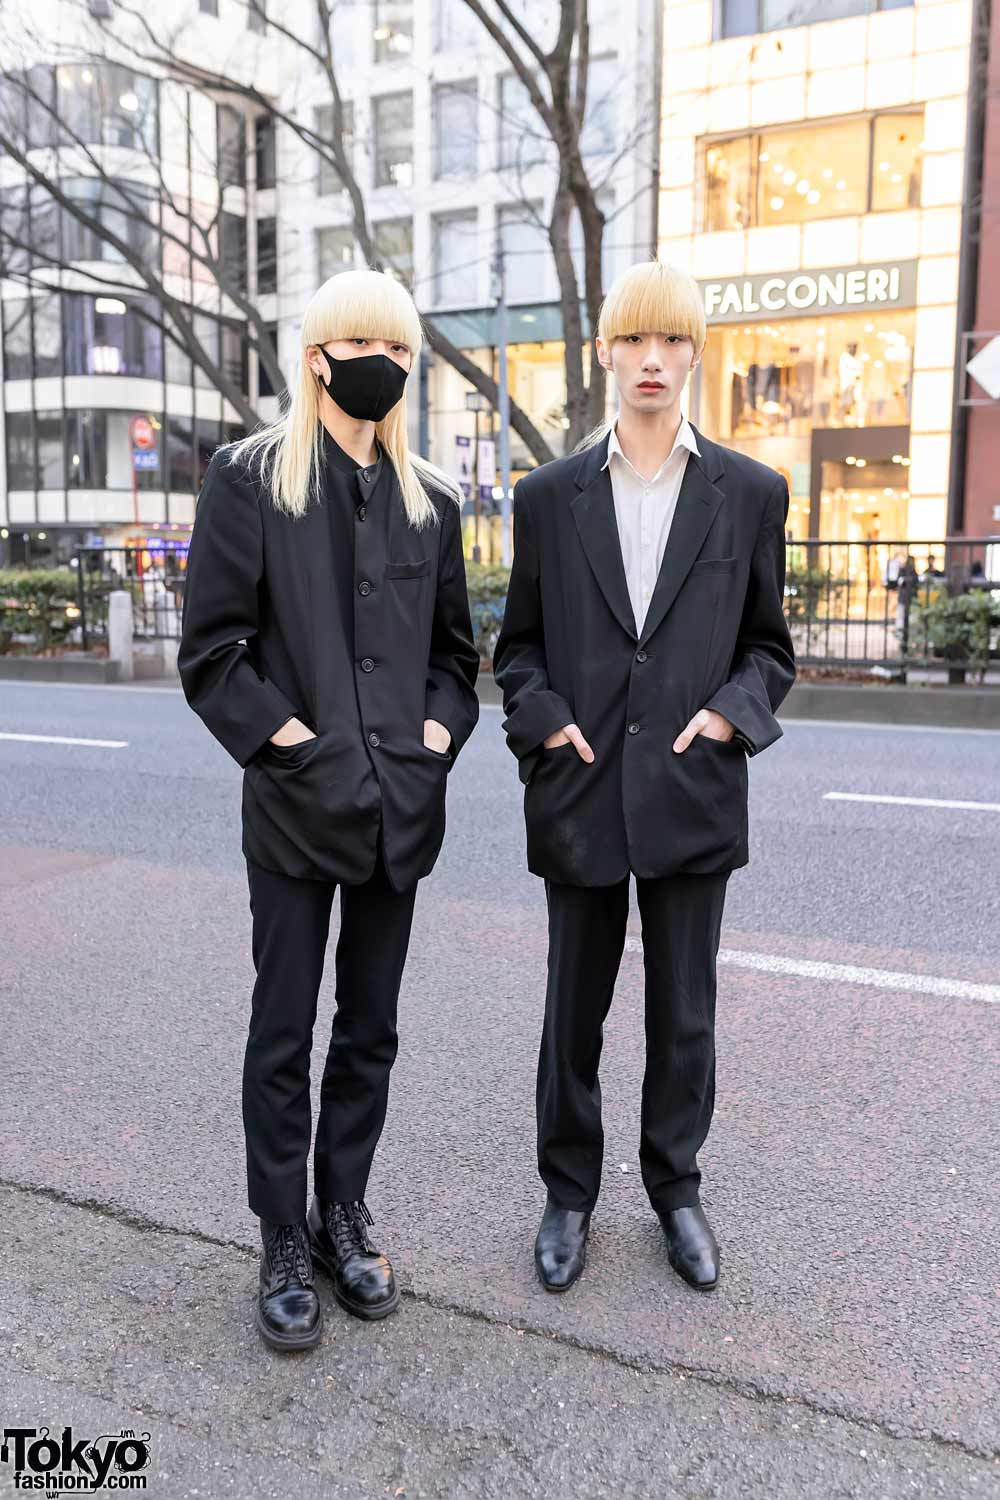 Japanese Male Models With Blonde Hair in Harajuku Wearing Comme Des Garcons, Diet Butcher Slim Skin & Issey Miyake Men